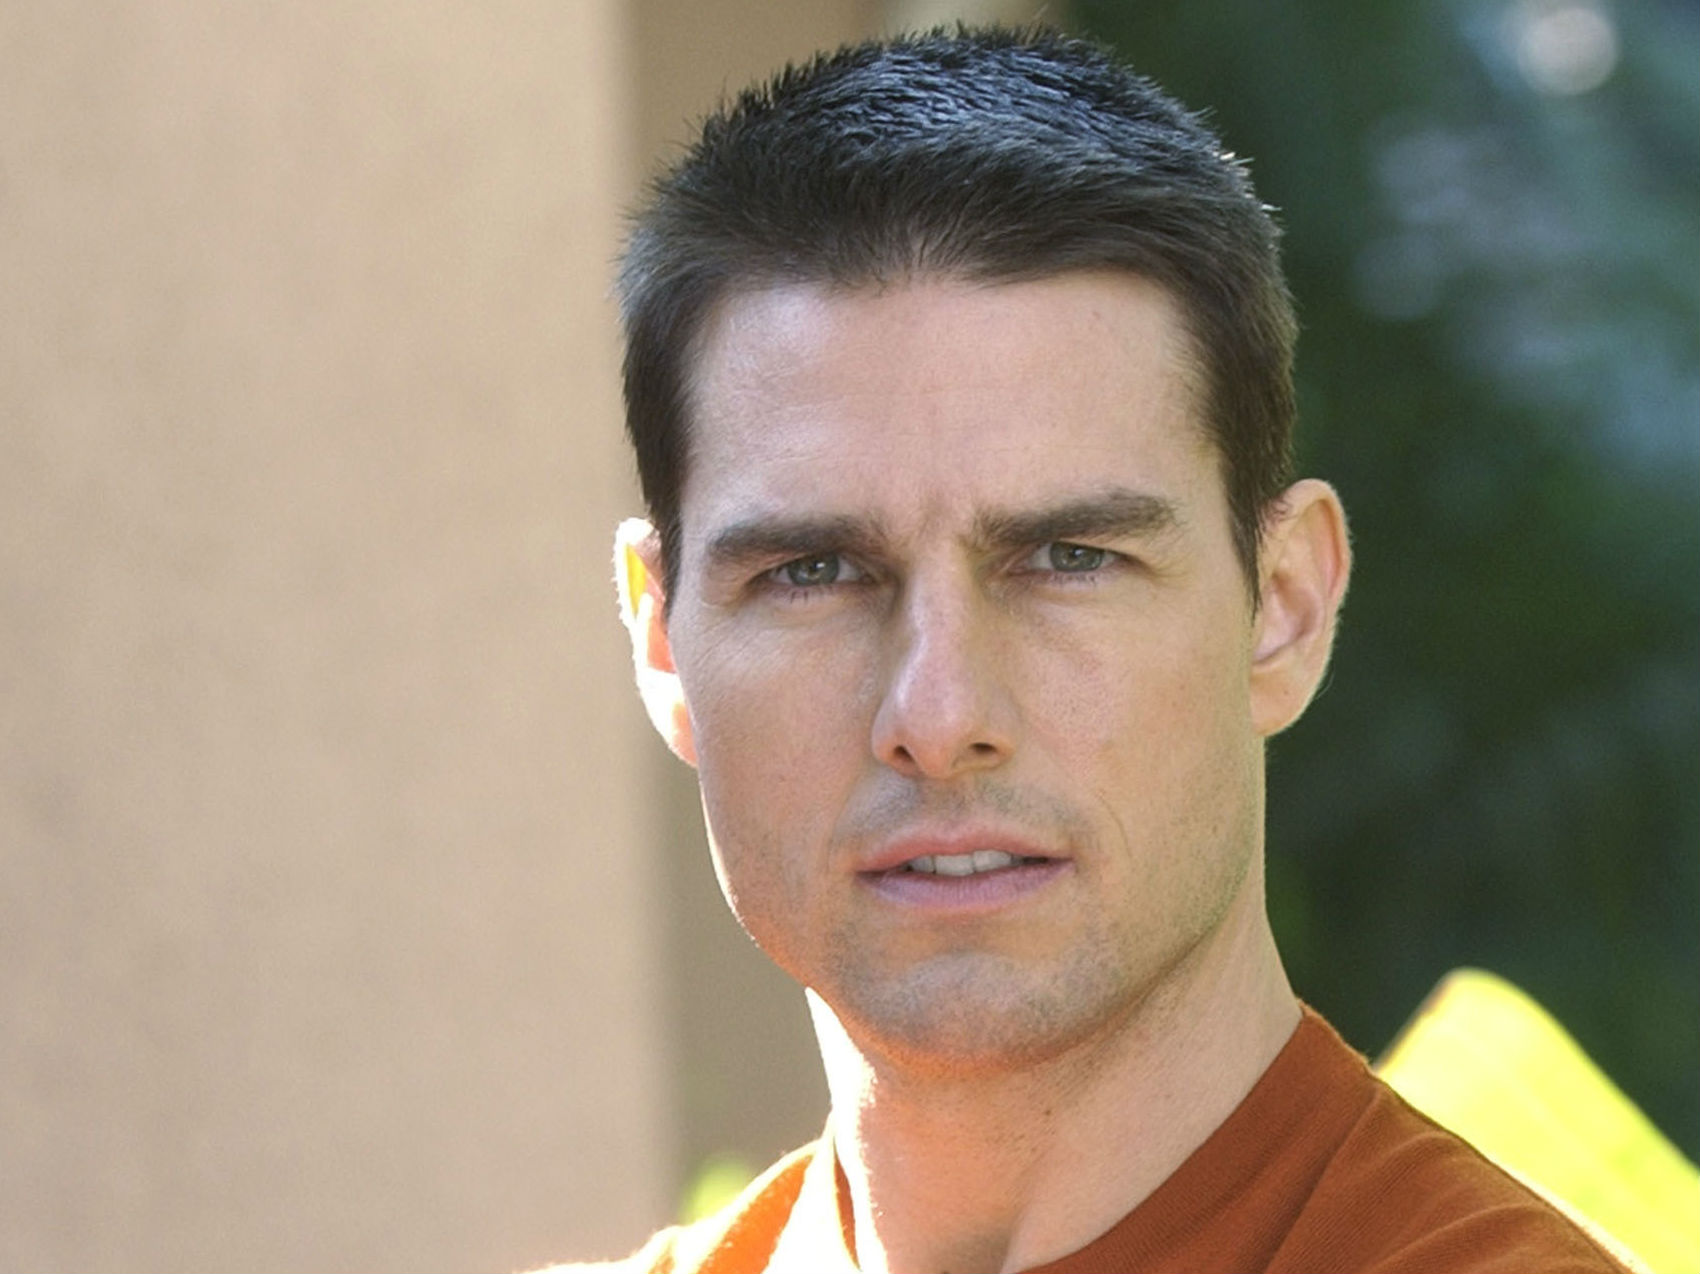 tom cruise americna actor hd wallpapers